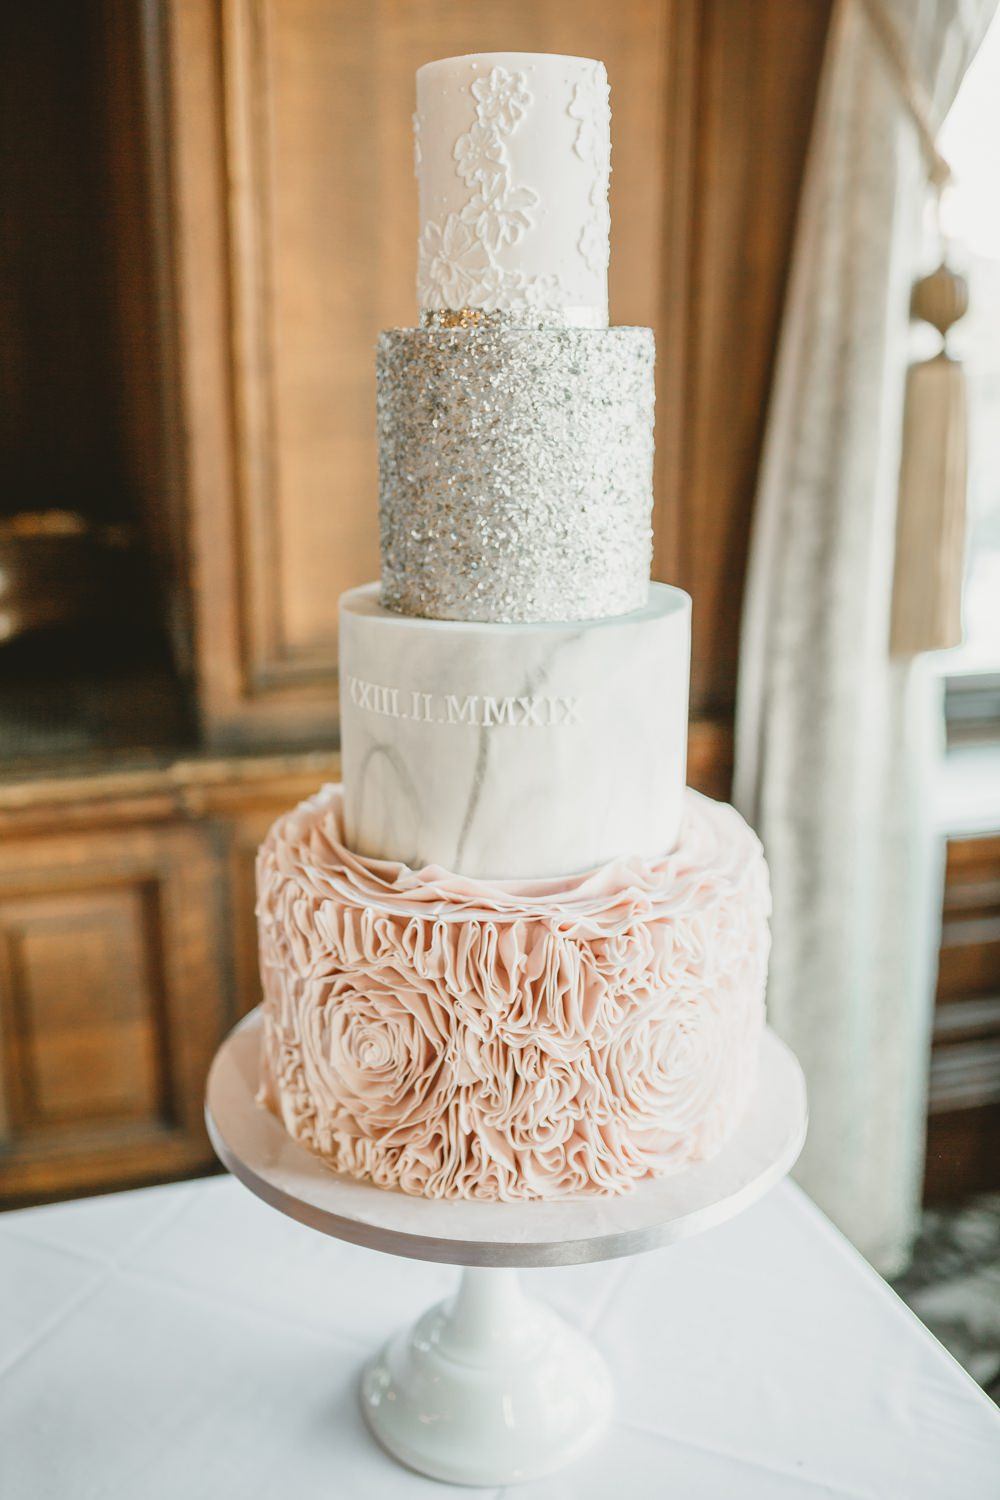 Cake Ruffle Pink Glitter Marble York Minster Wedding Amy Lou Photography